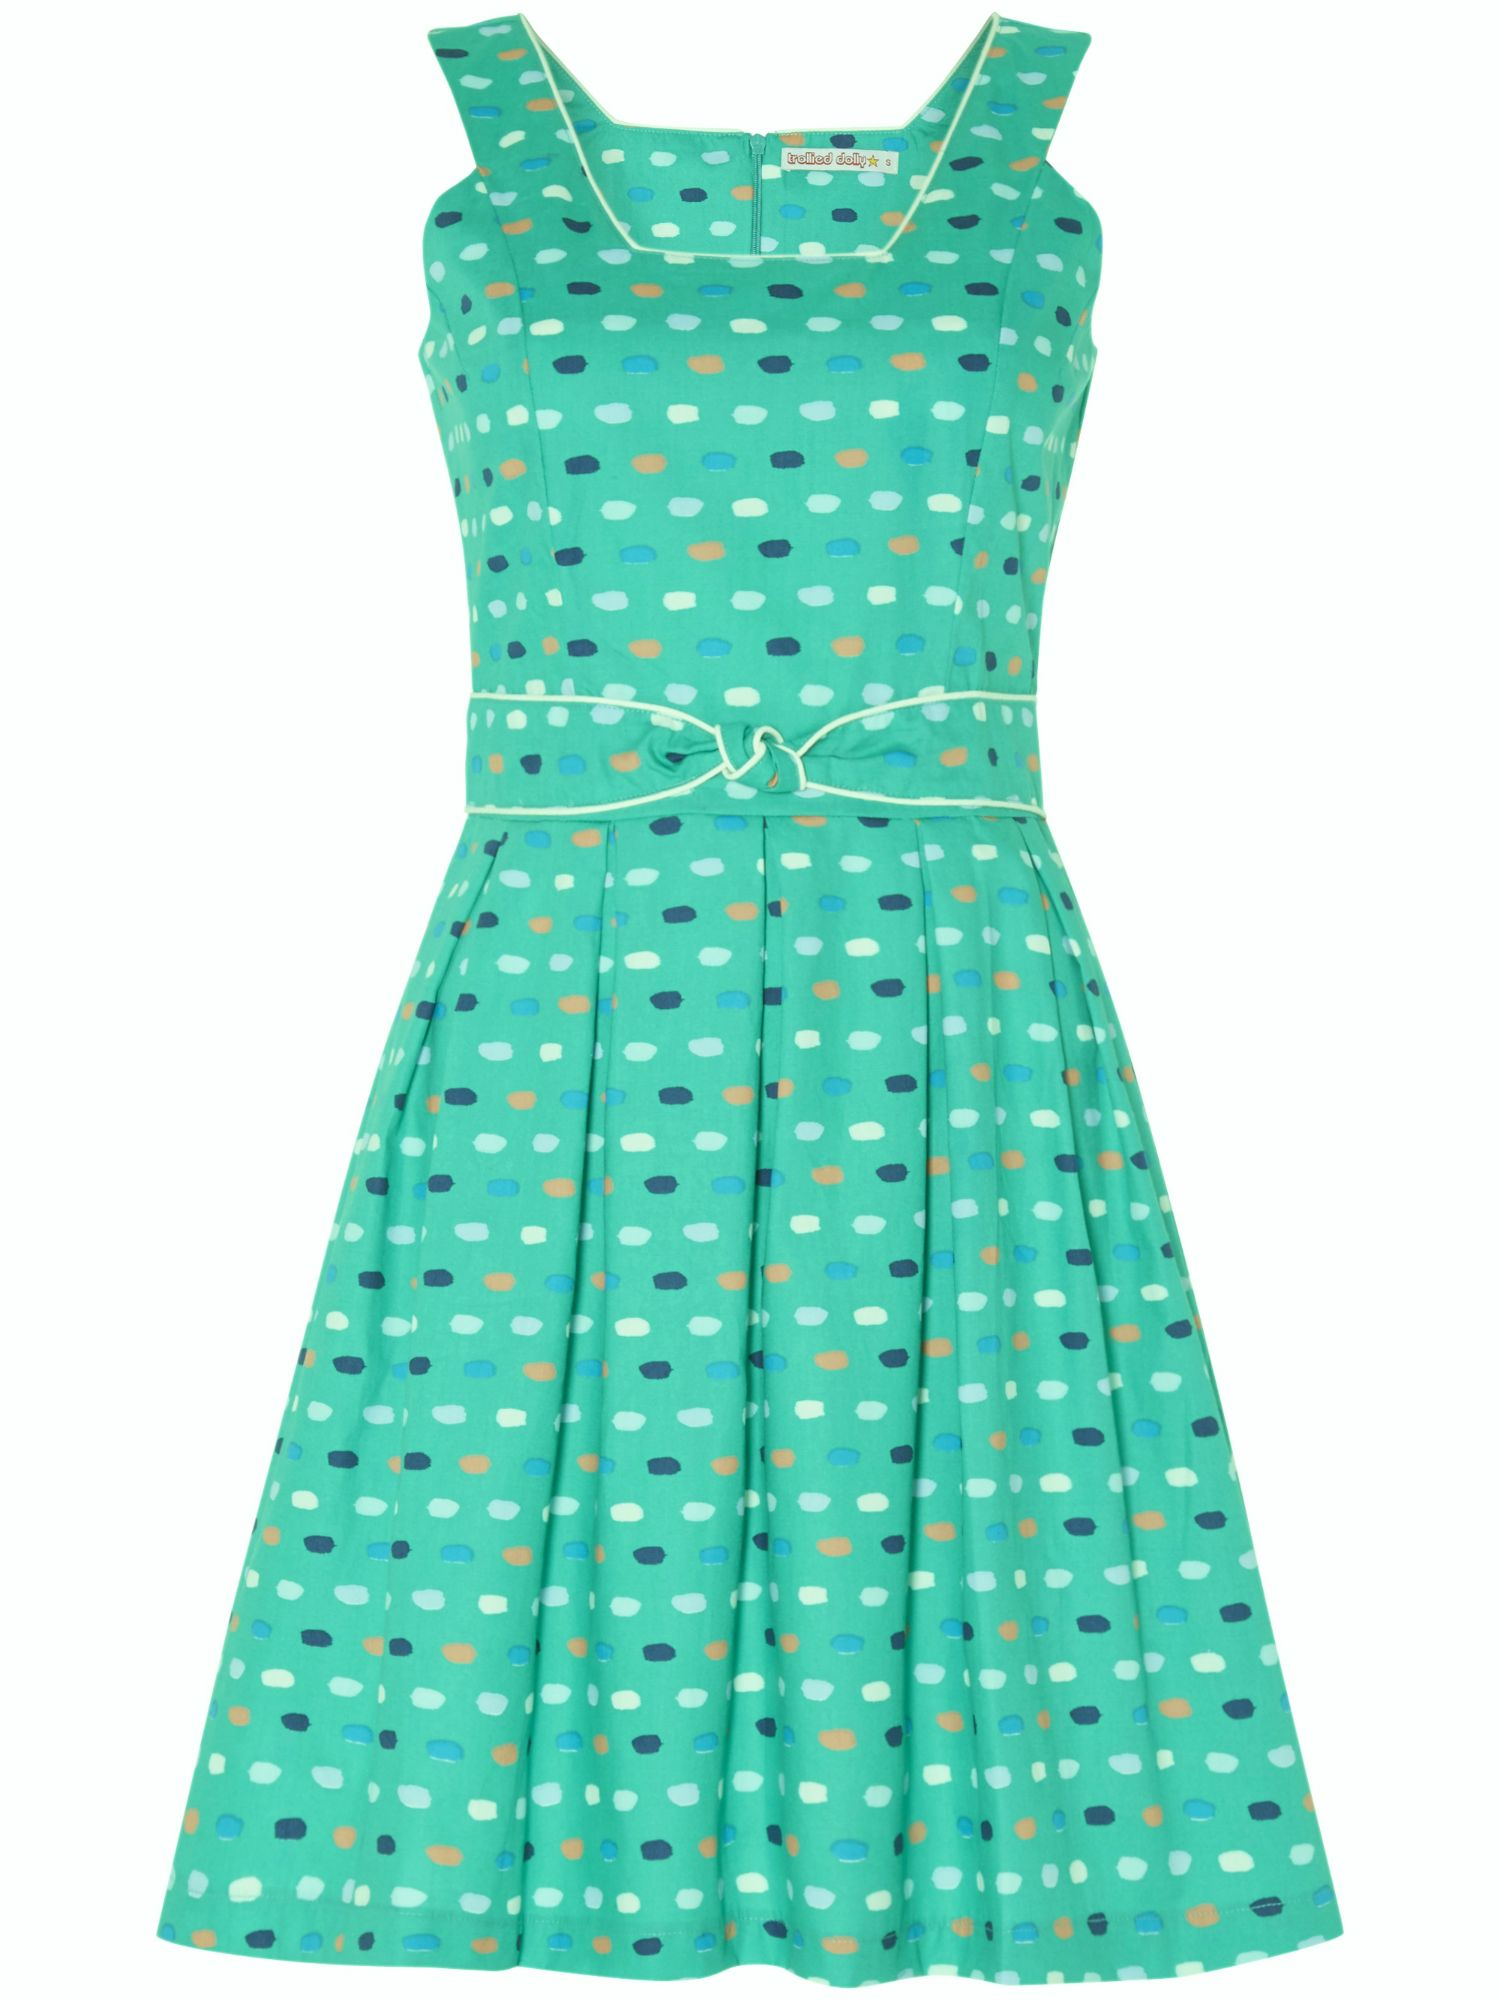 Trollied Dolly Sun Up Fun Up Dress $55.00 AT vintagedancer.com